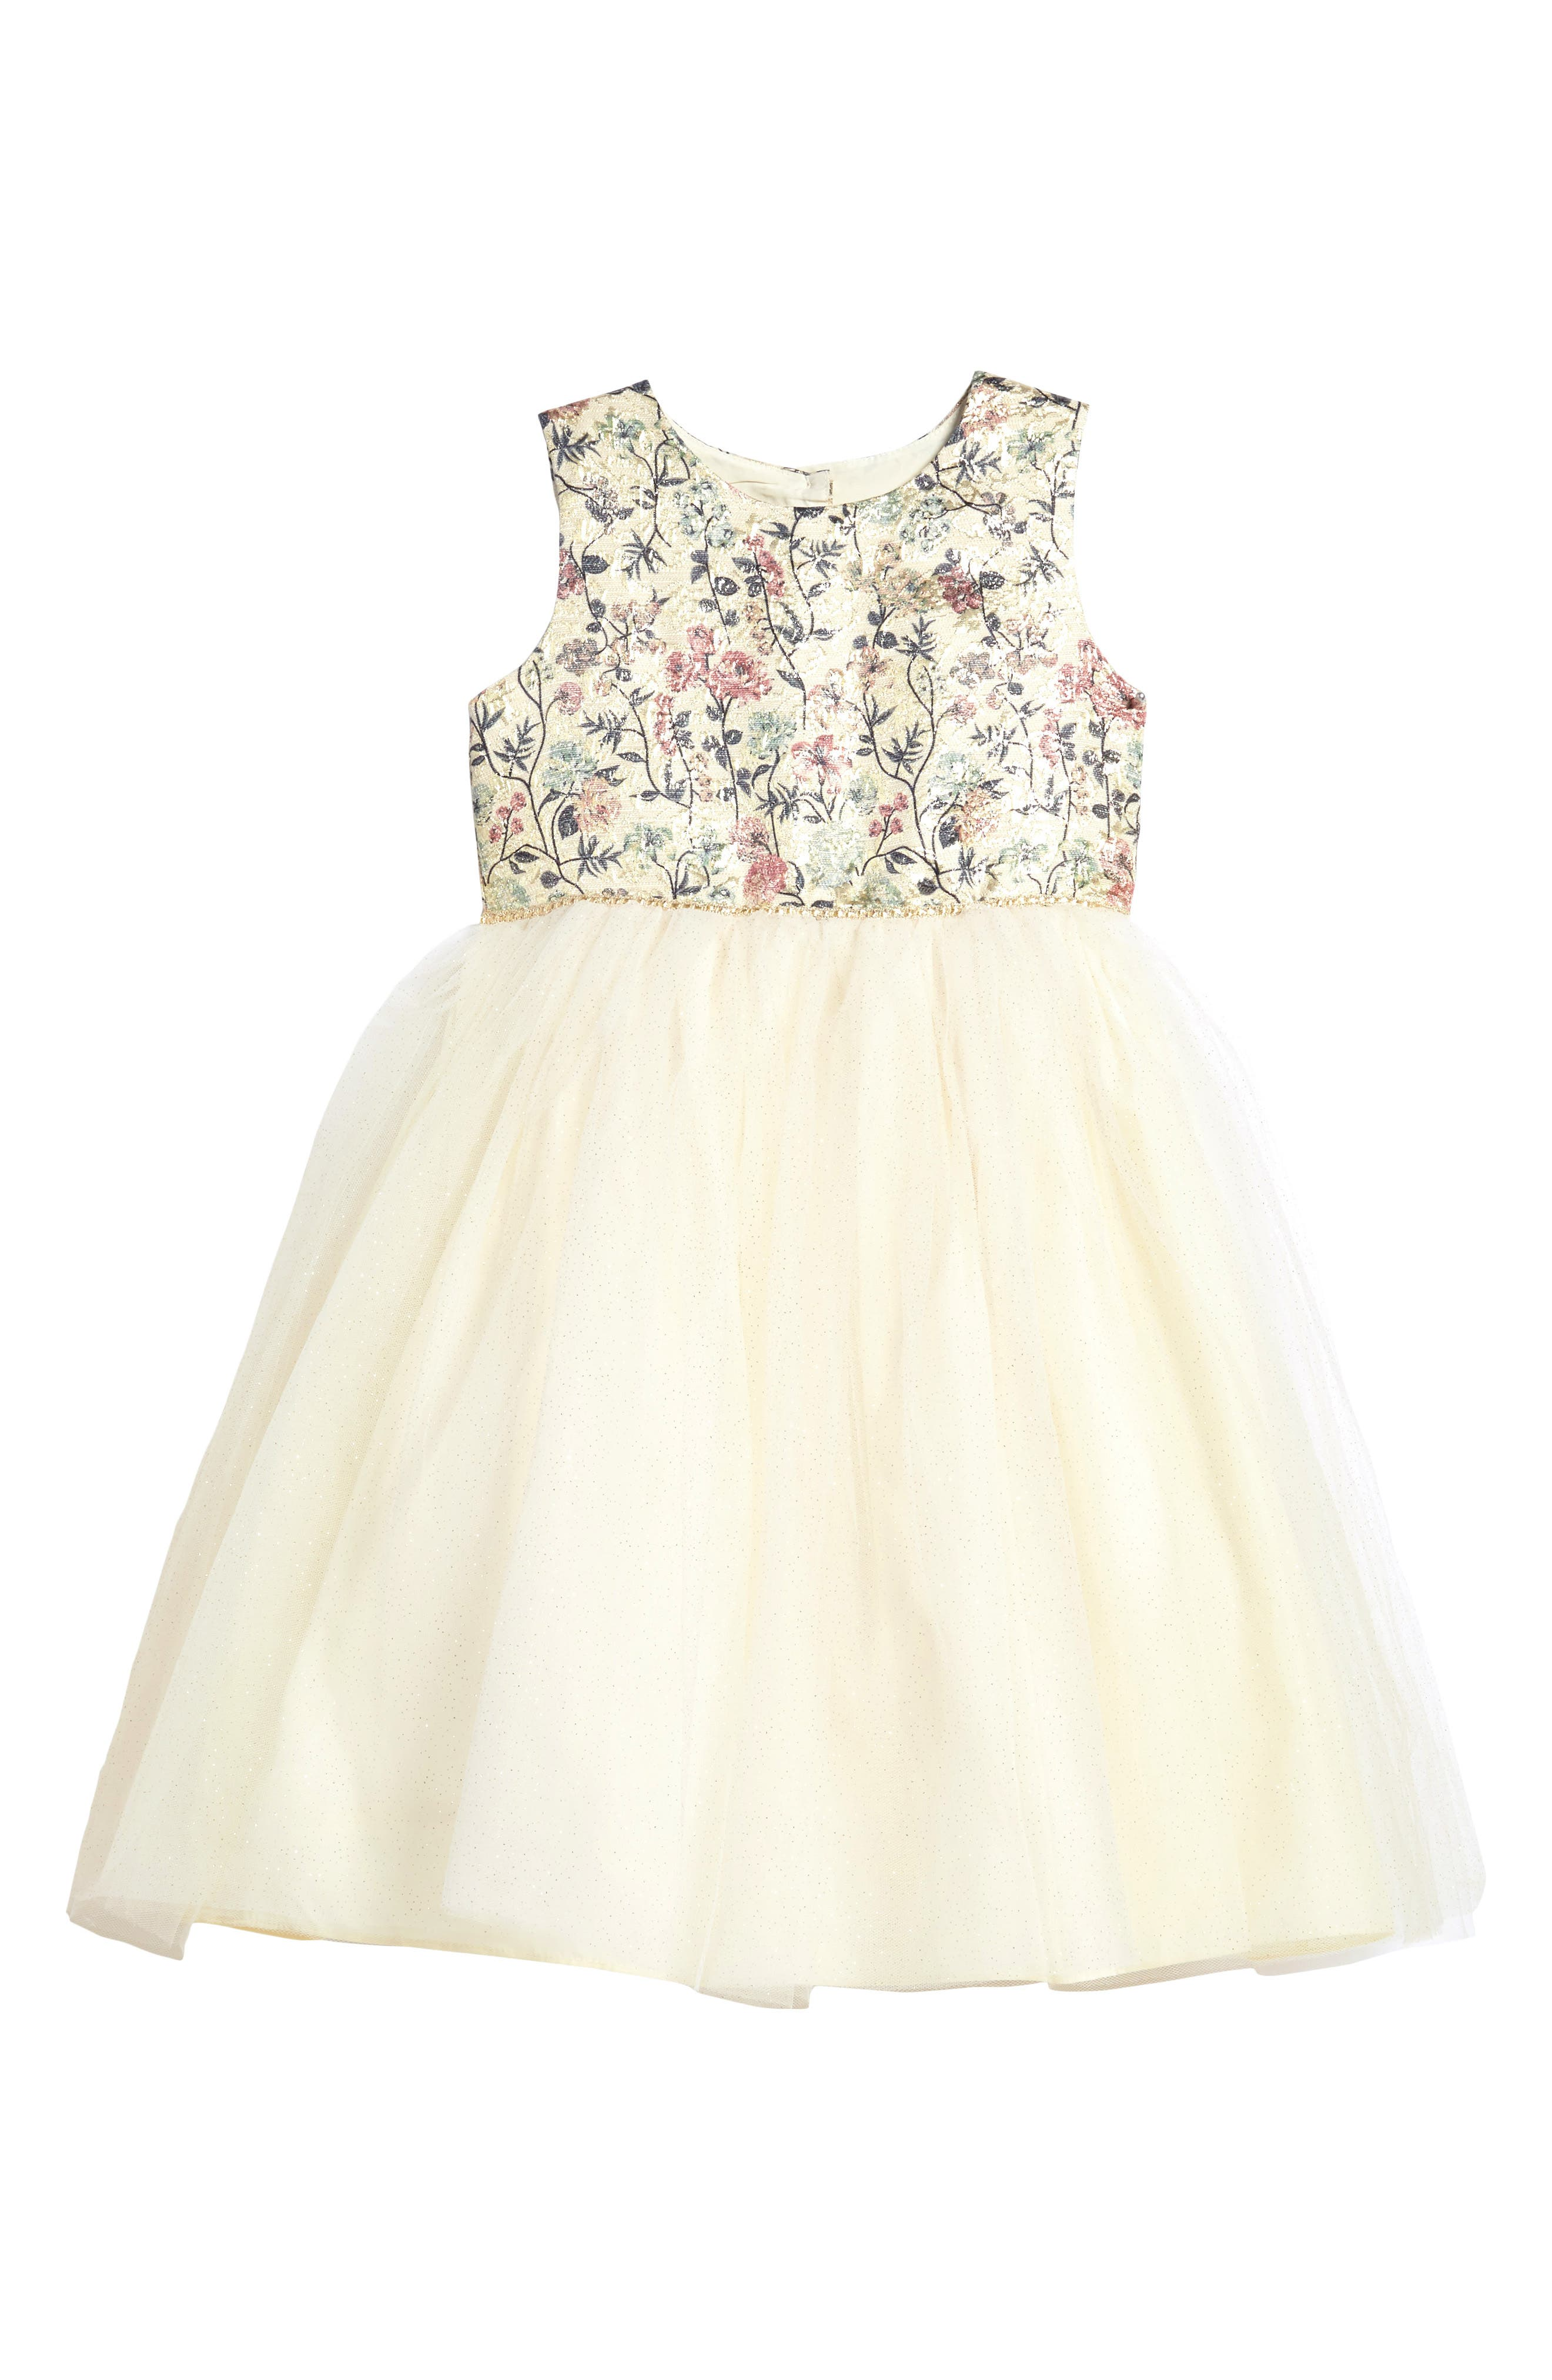 Main Image - Pippa & Julie Floral Brocade & Tulle Dress (Toddler Girls, Little Girls & Big Girls)